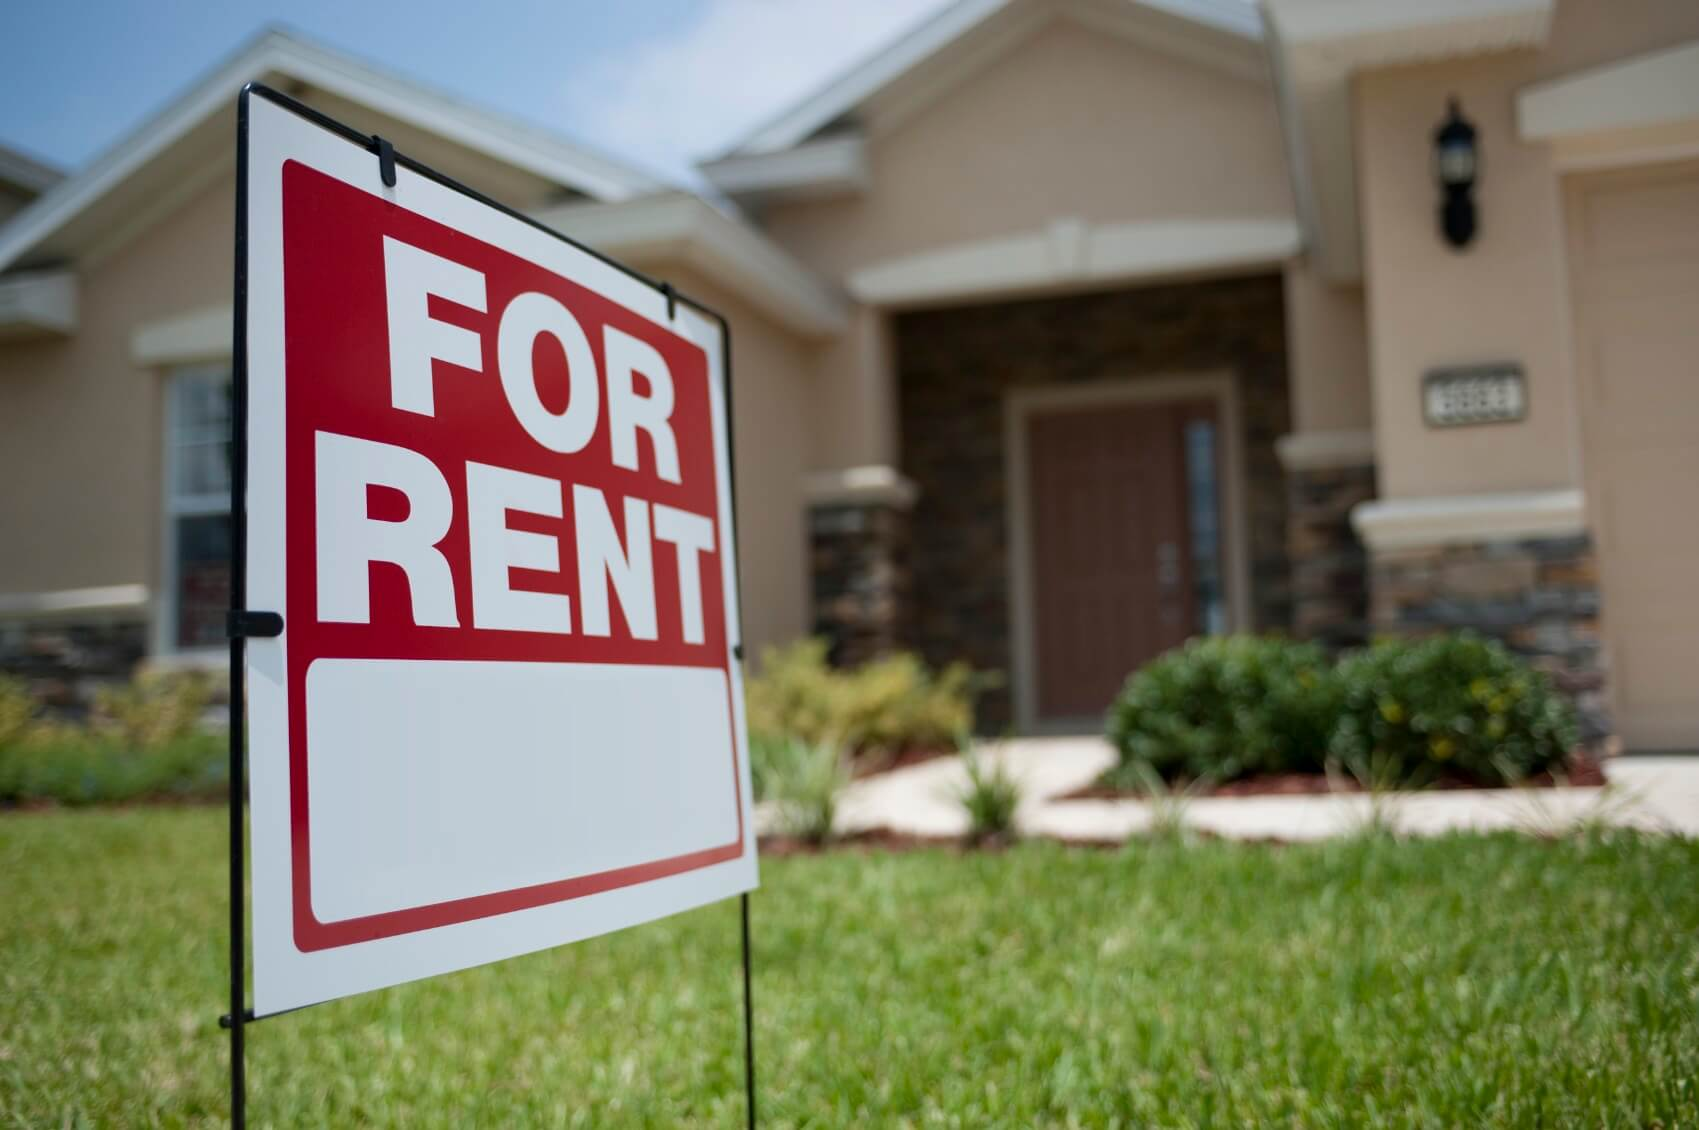 Keeping the rental price realistic